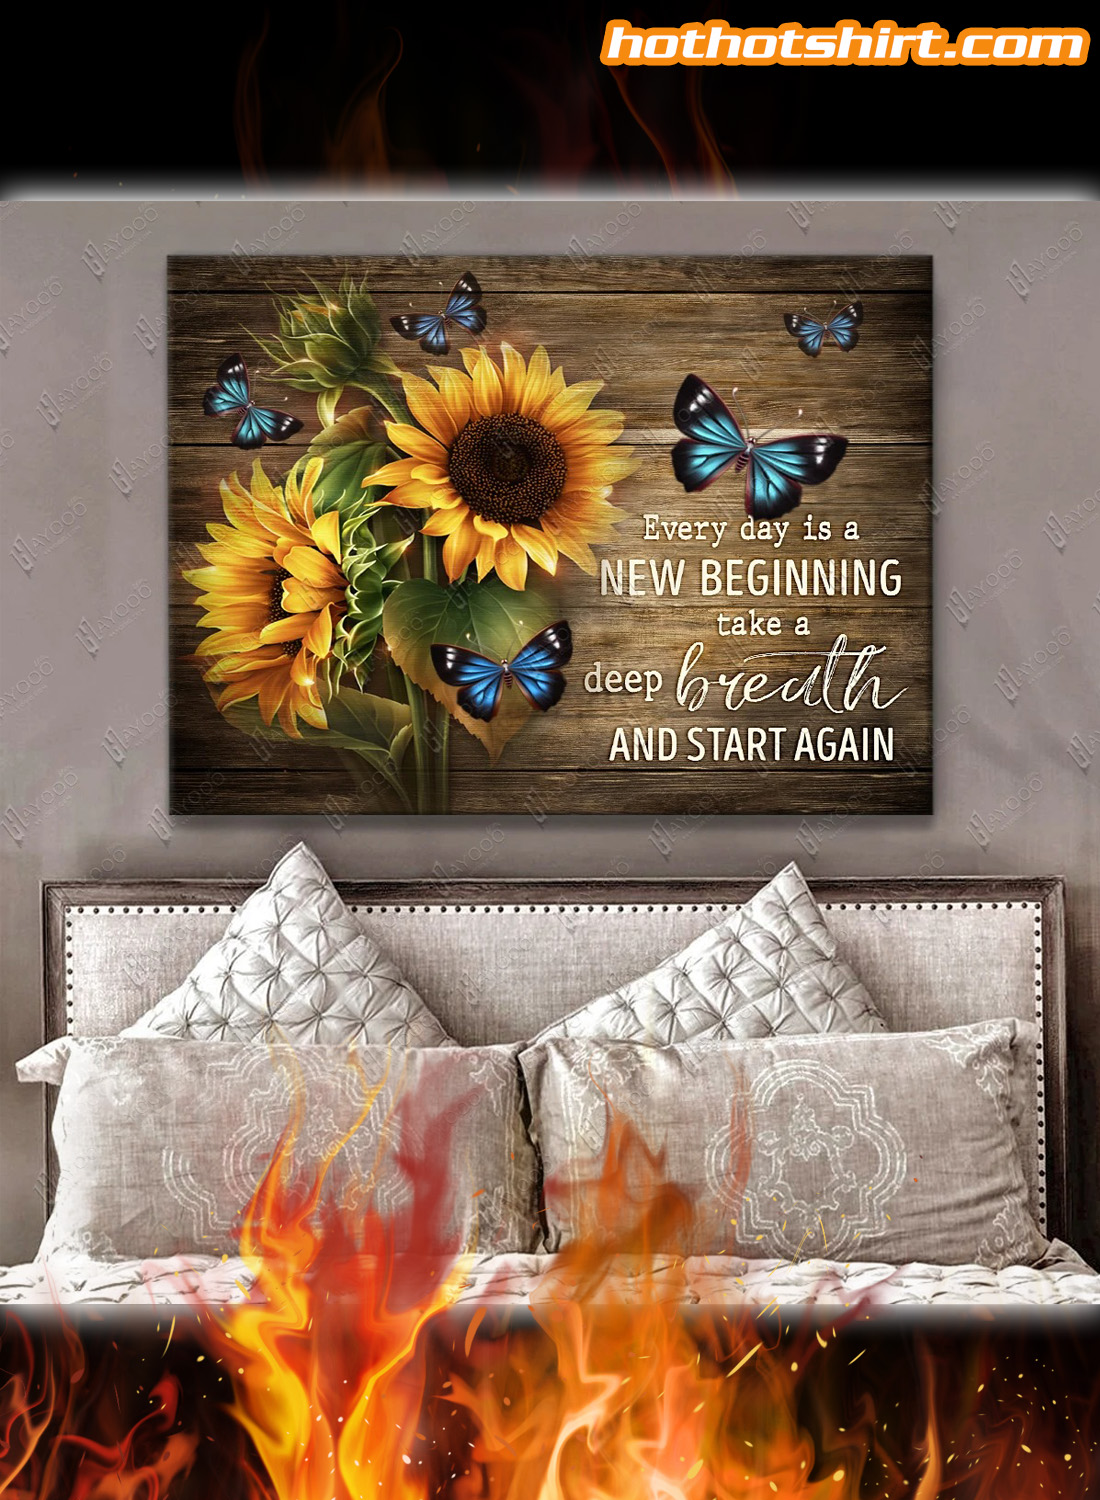 Sunflowers And Butterflies Every day is a new beginning take a deep breath and start again canvas prints and poster 1